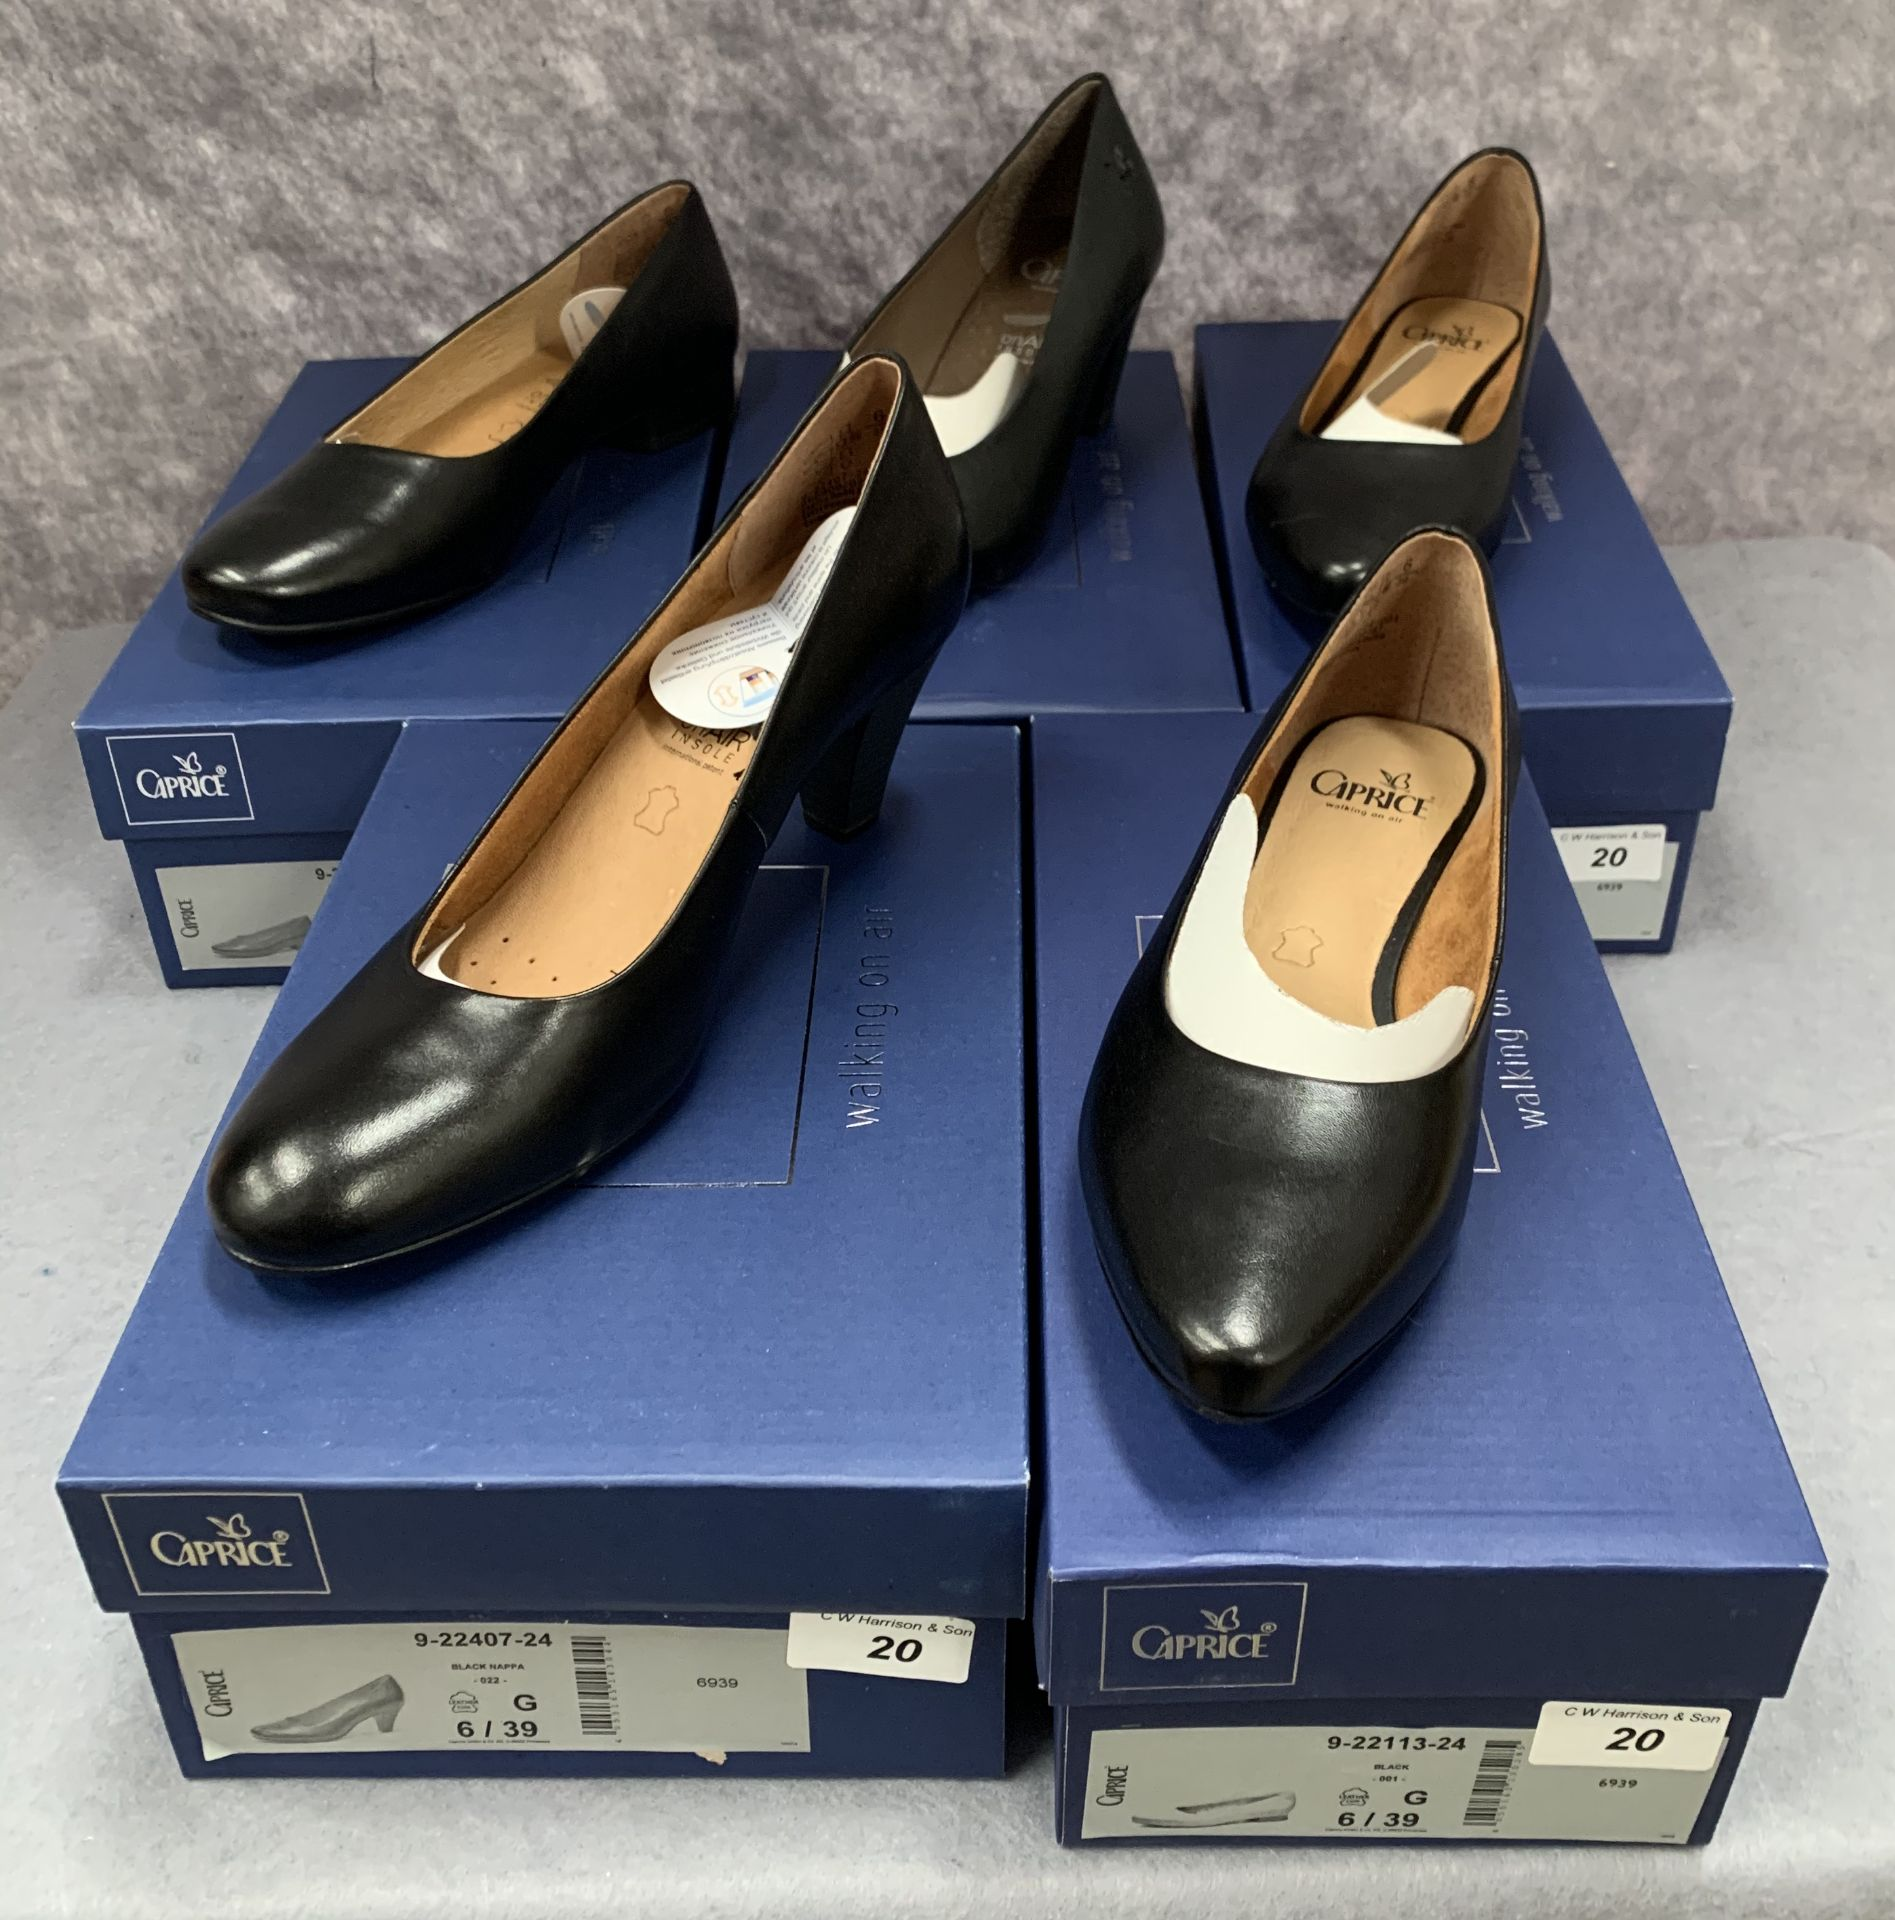 Lot 20 - Five pairs of Caprice ladies shoes in black, various styles, size 6, retail price £59.